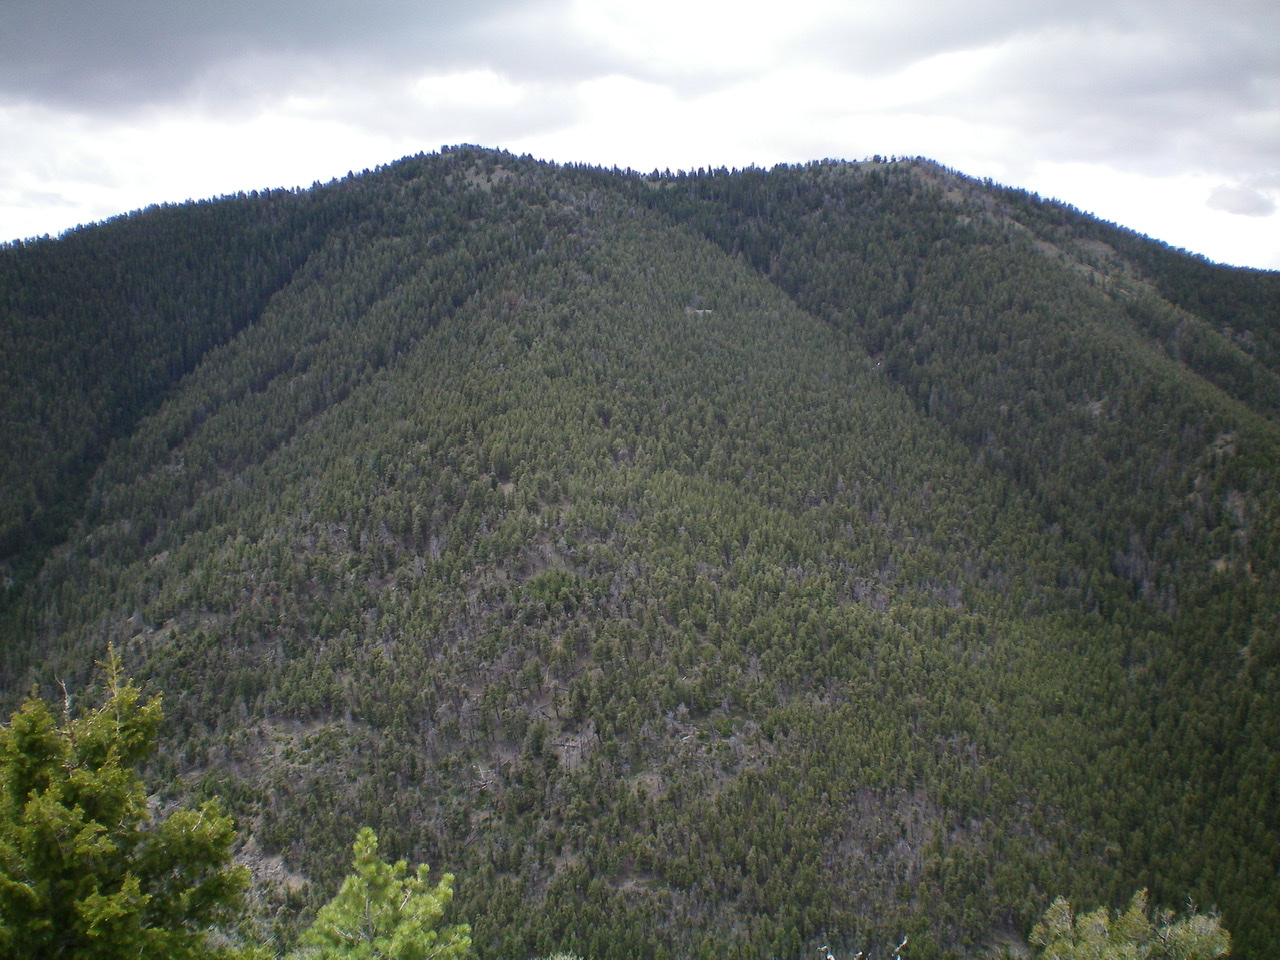 The thickly-forested North Face/Ridge of Peak 9300 as viewed from the summit of Peak 8365. The summit of Peak 9300 is the left hump. Livingston Douglas Photo